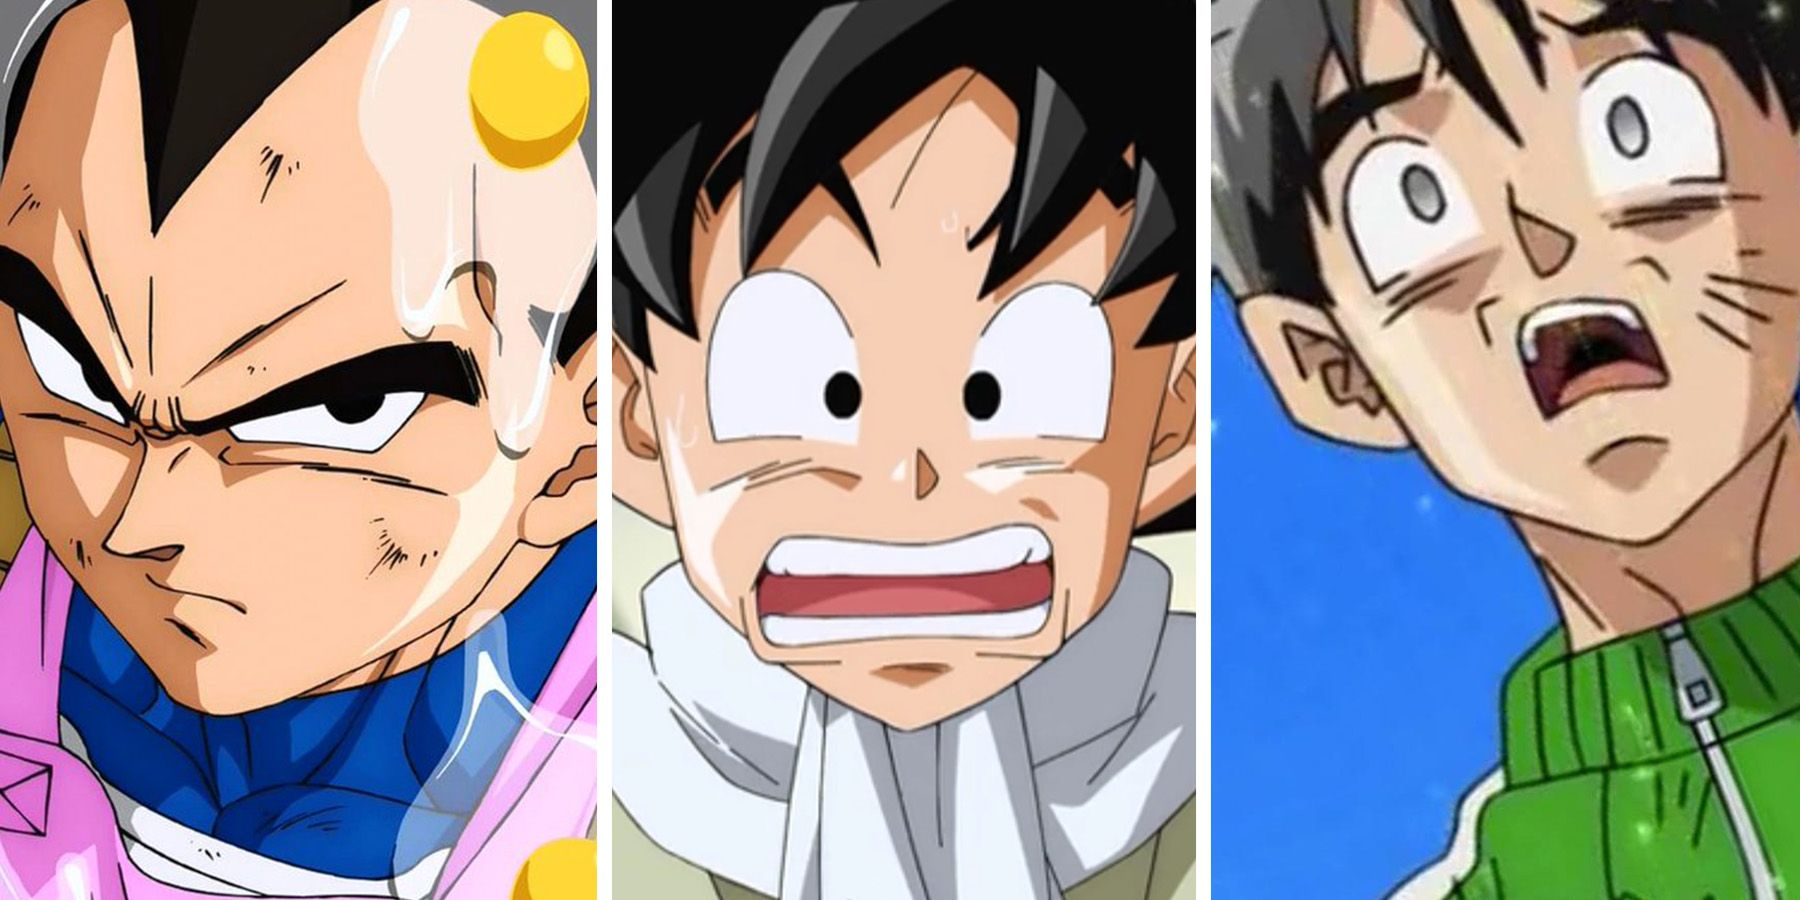 15 Things Dragon Ball Super Gets Completely Wrong About Dbz Characters